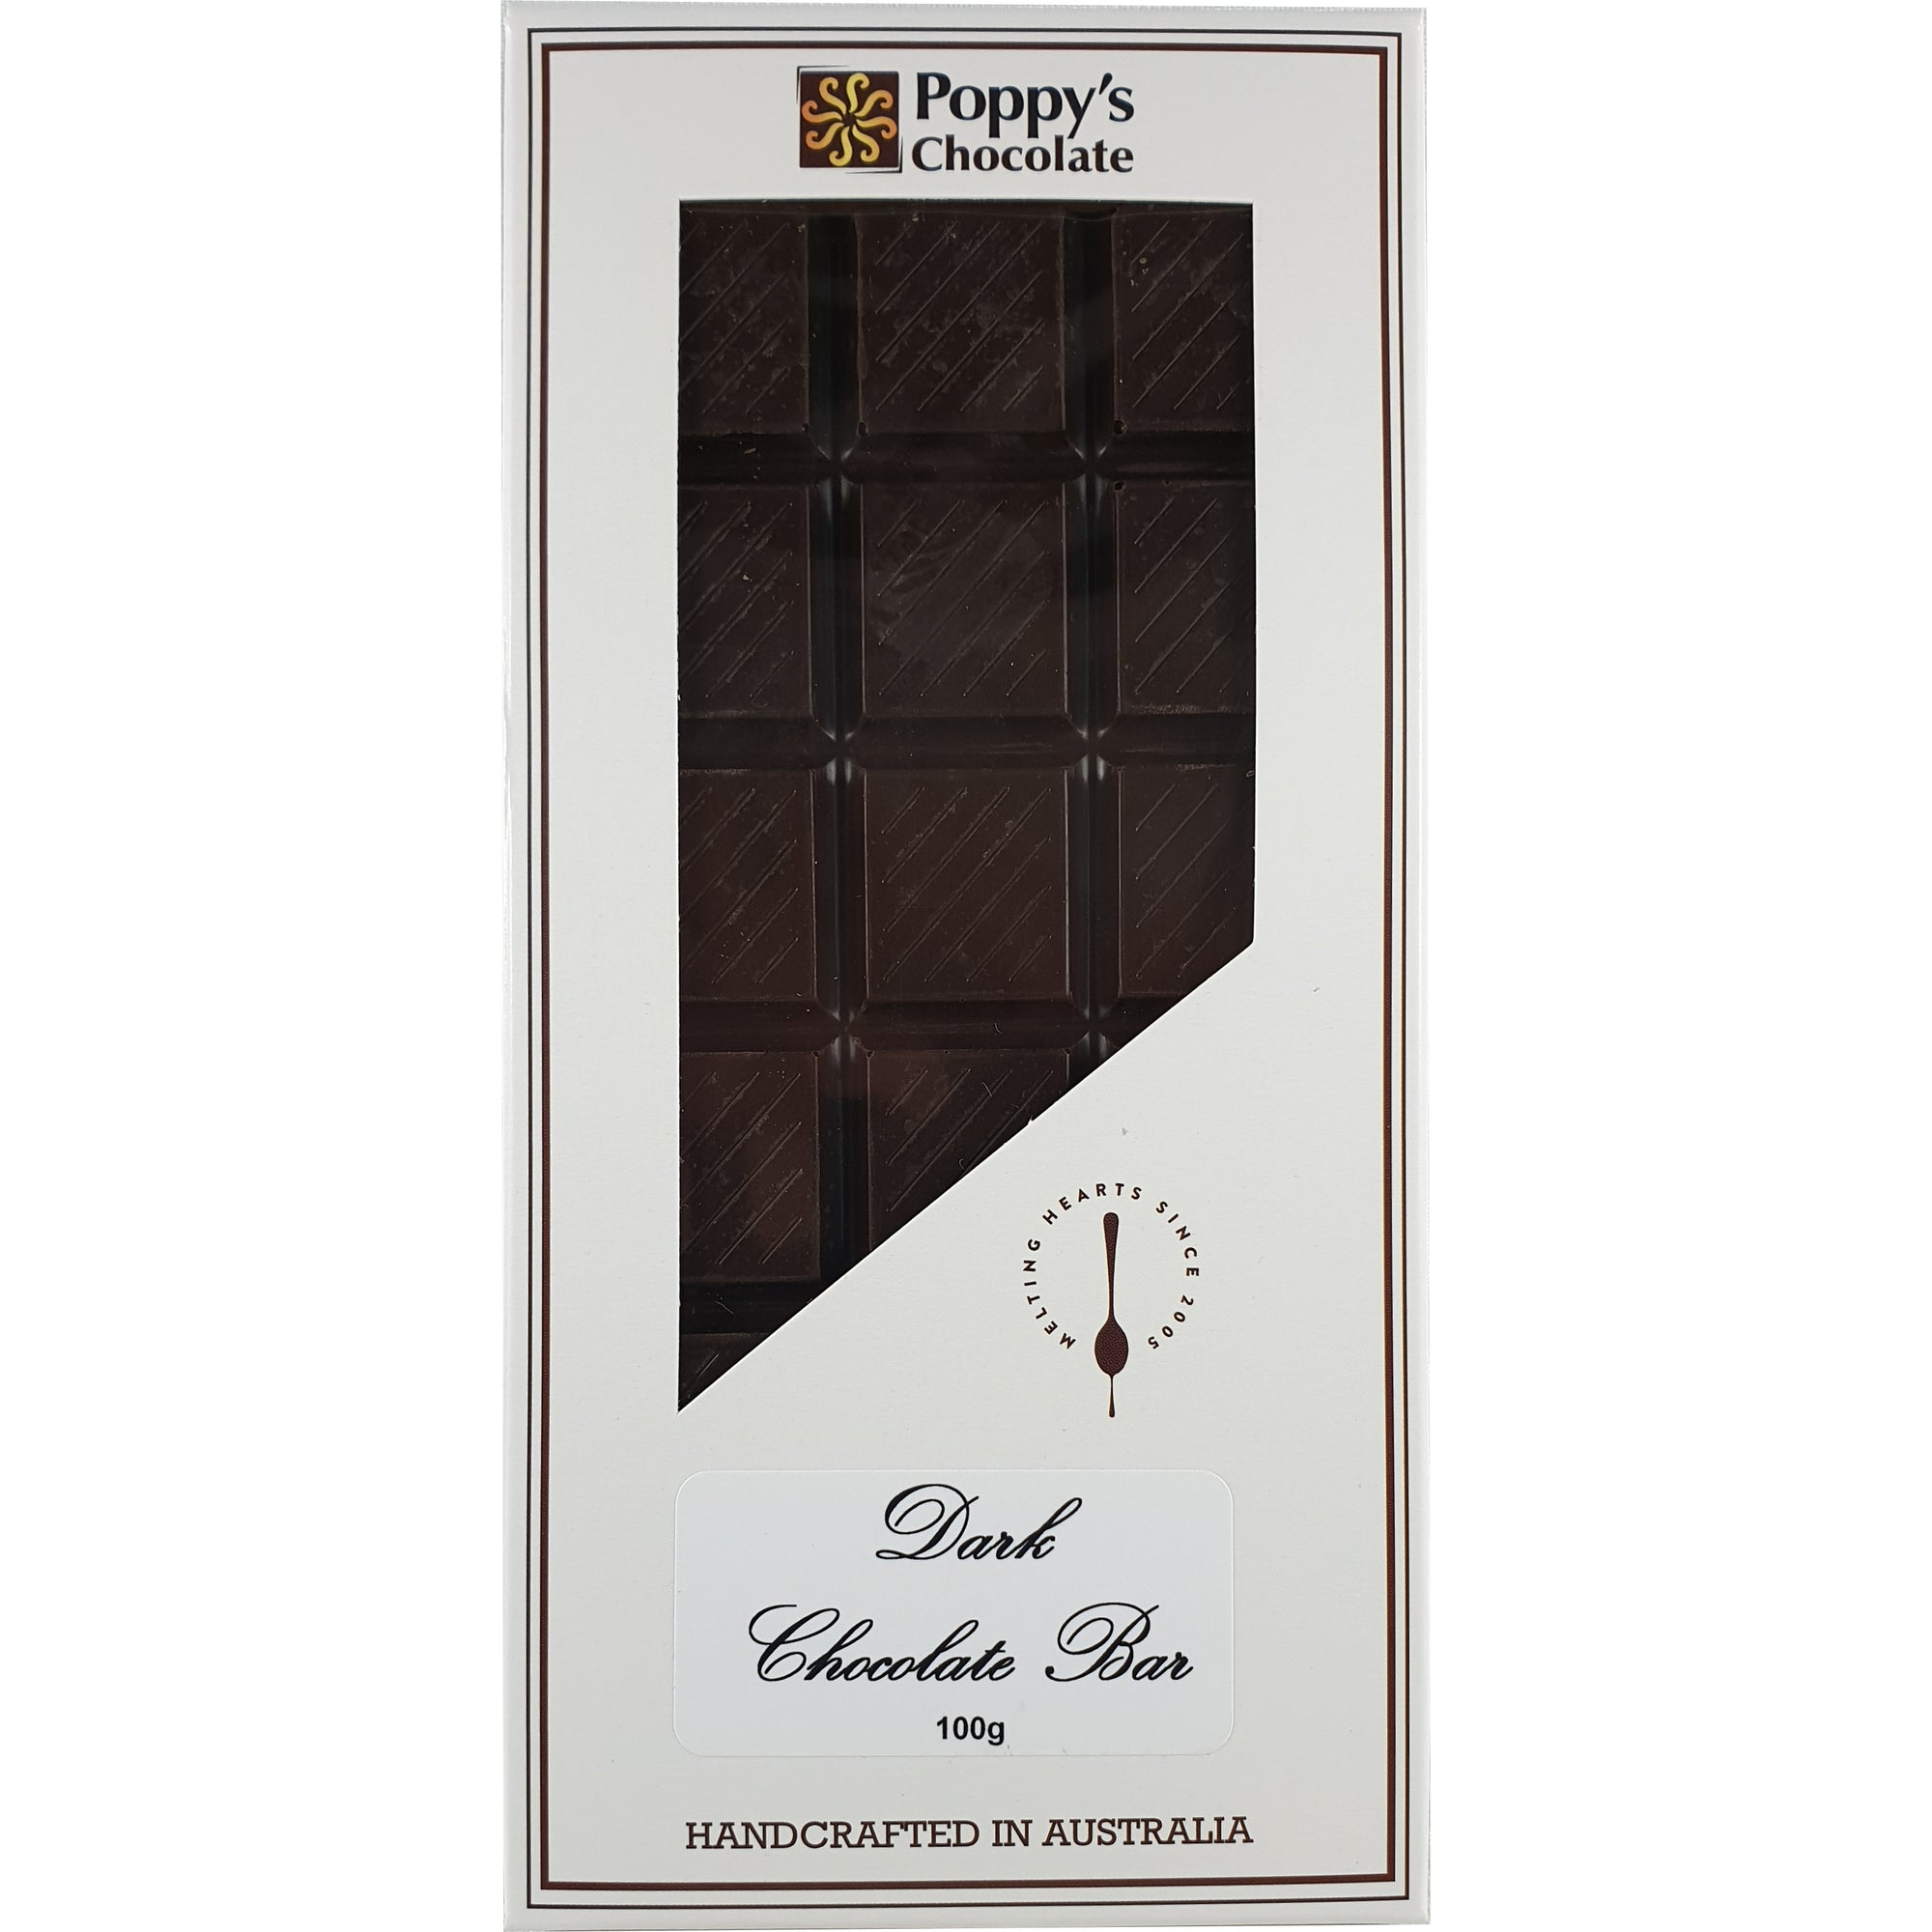 Dark 56% Chocolate Block 100g